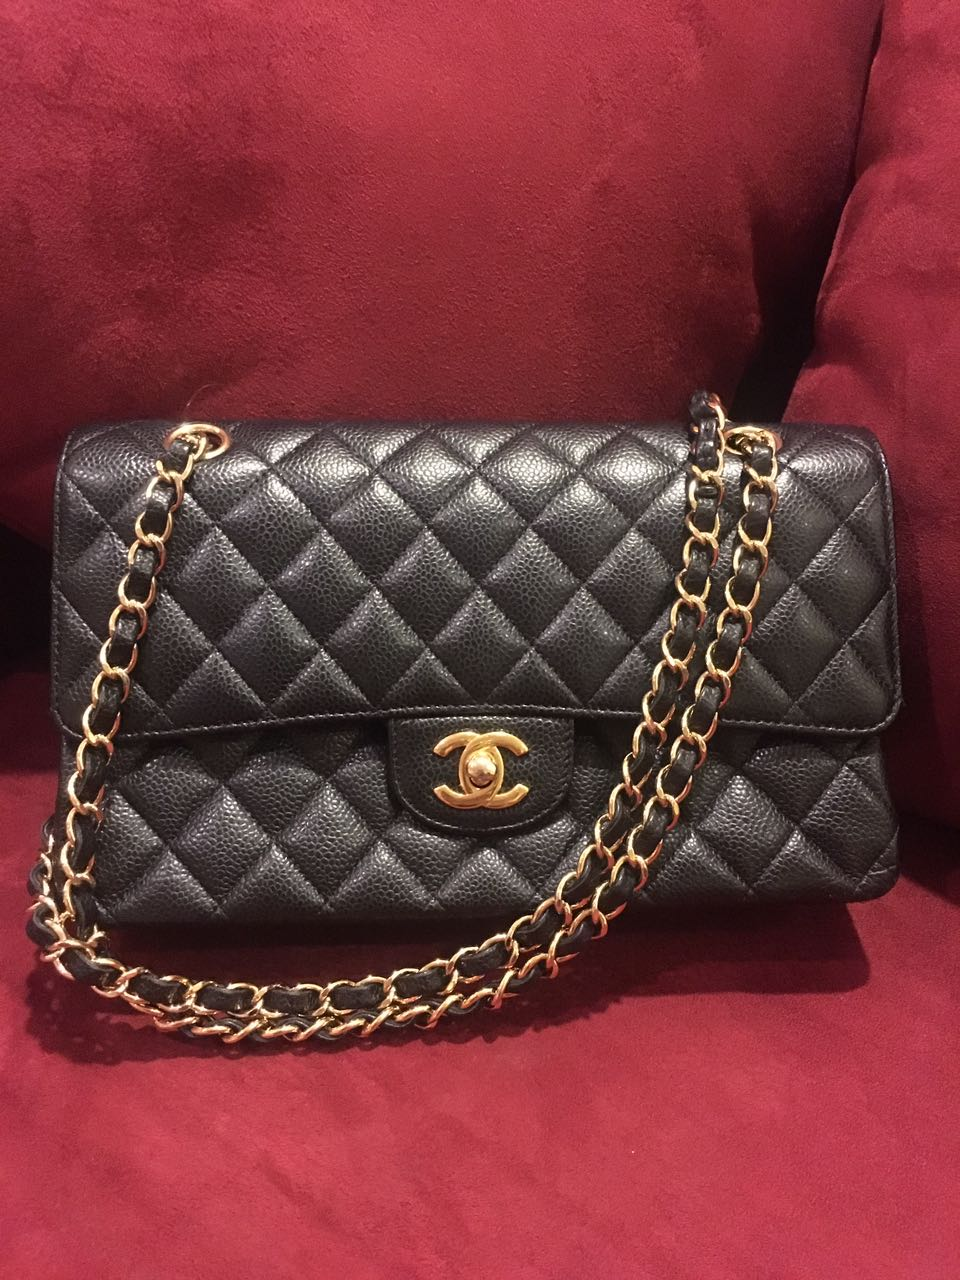 84ccd9f78a3c (1) Chanel Flap Bag in Black (Medium) – I have it in the caviar leather  finish + gold hardware and it will never go out of style.